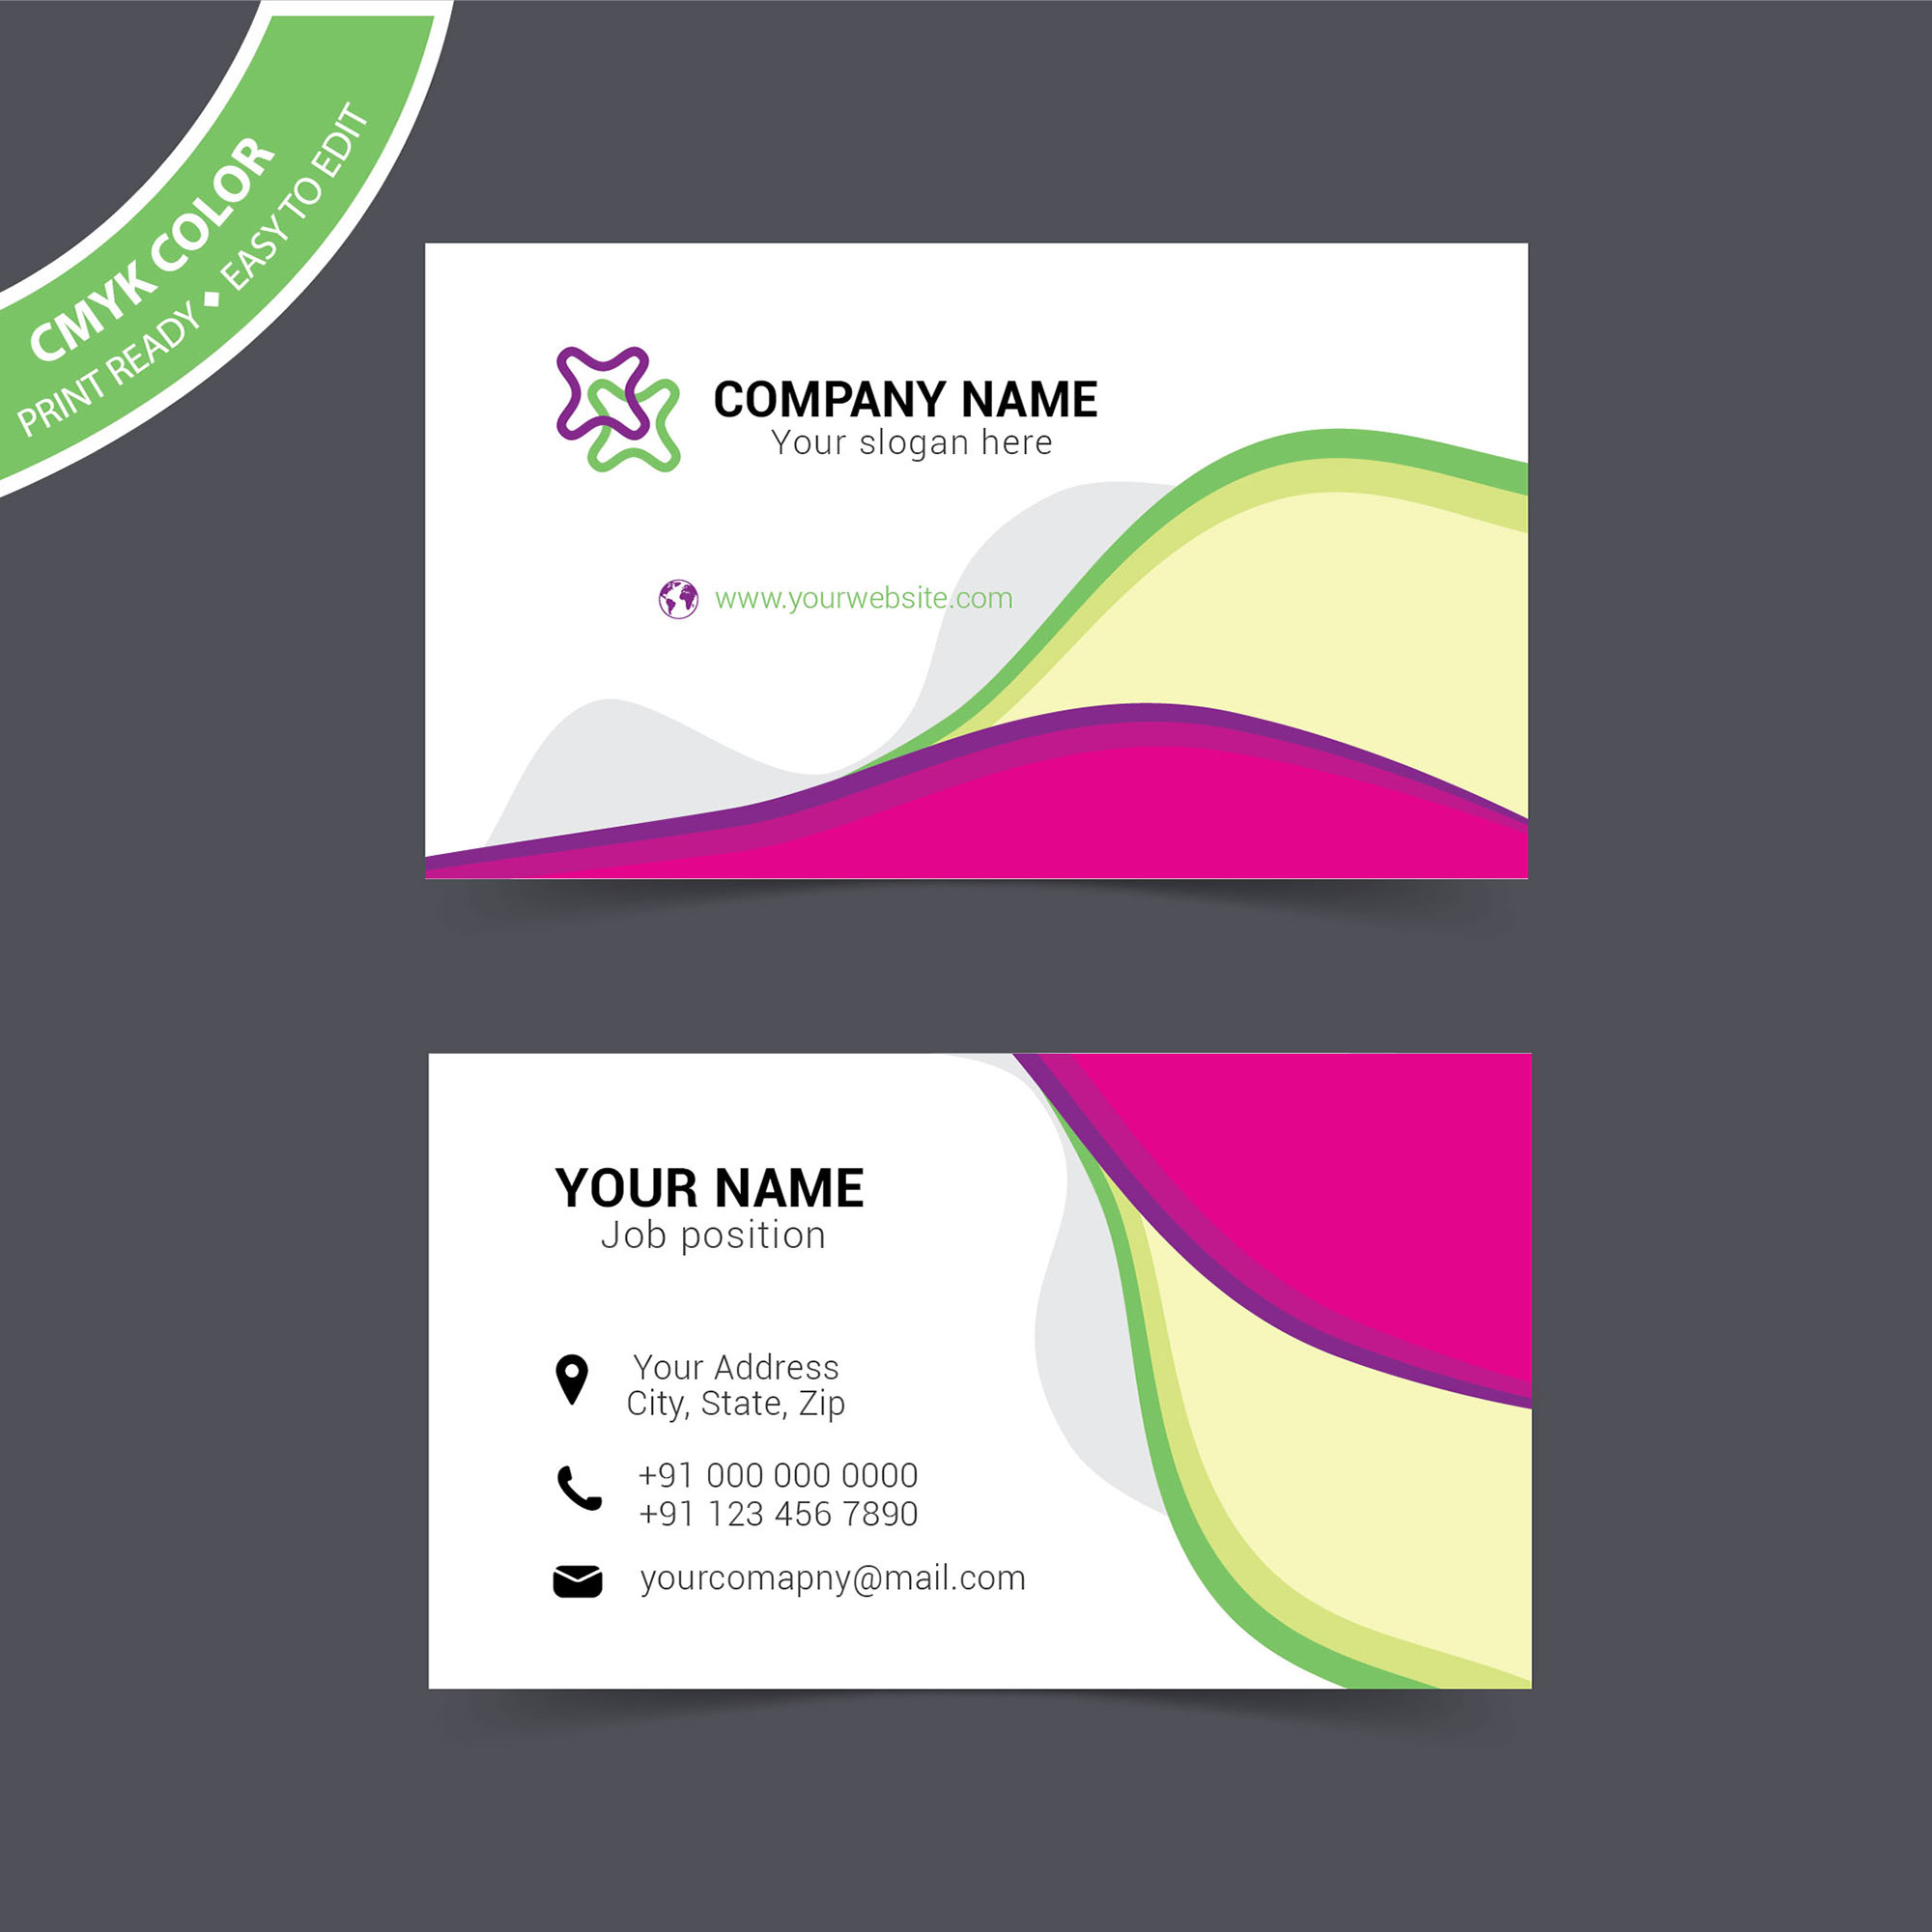 Visiting card design sample free download wisxi business card business cards business card design business card template design templates wajeb Gallery